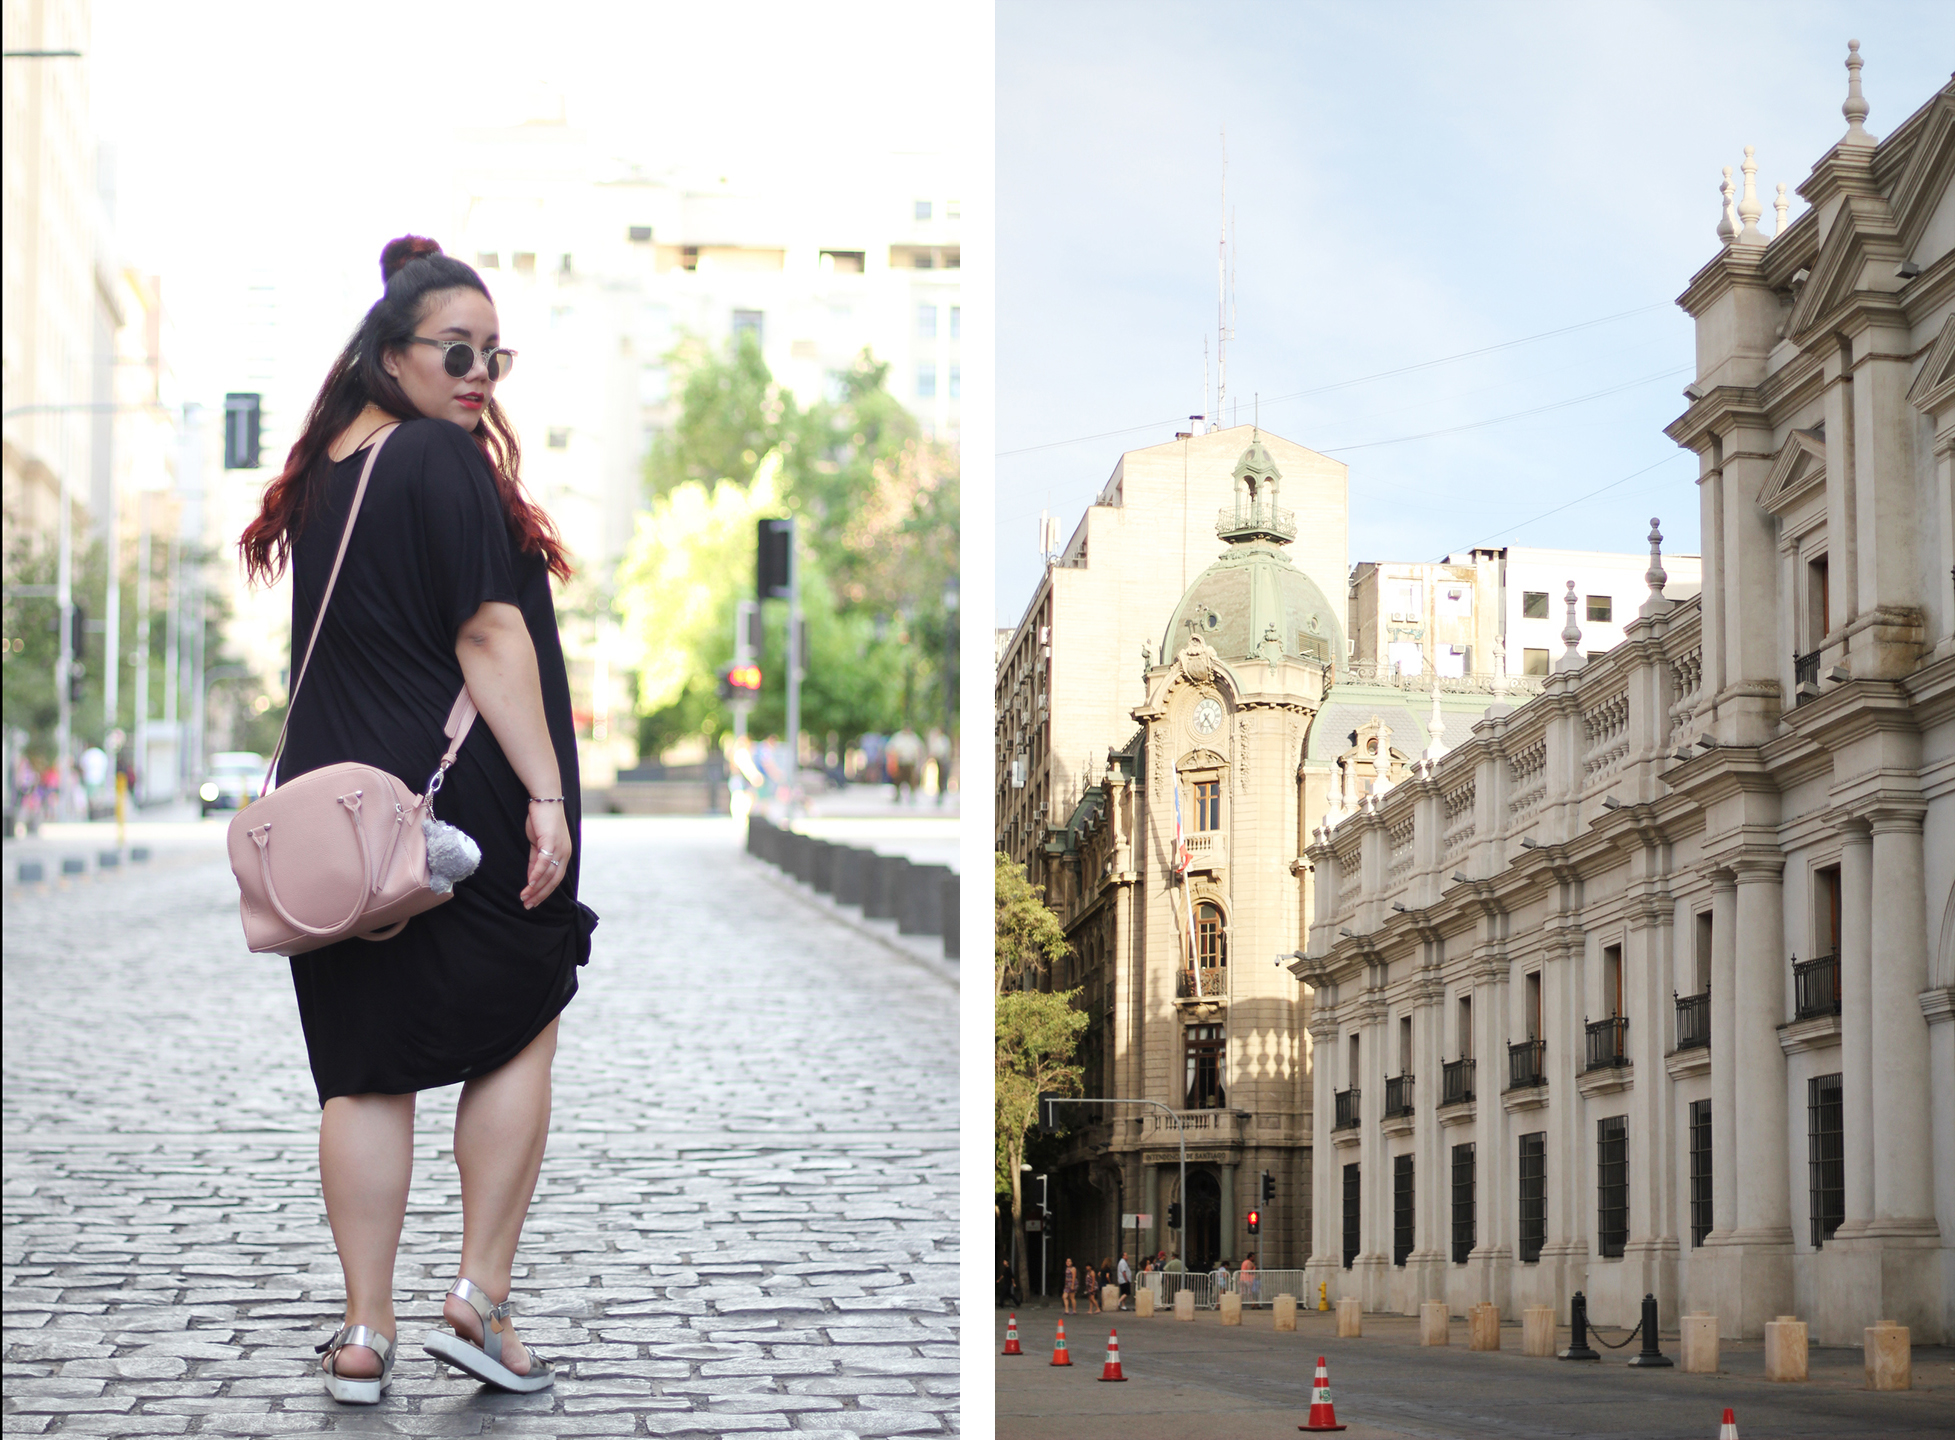 comfy-look-oversized-dress-dafiti-chile-forever-21-mexican-blogger-hm-half-bun-street-style-easy-going-outfit